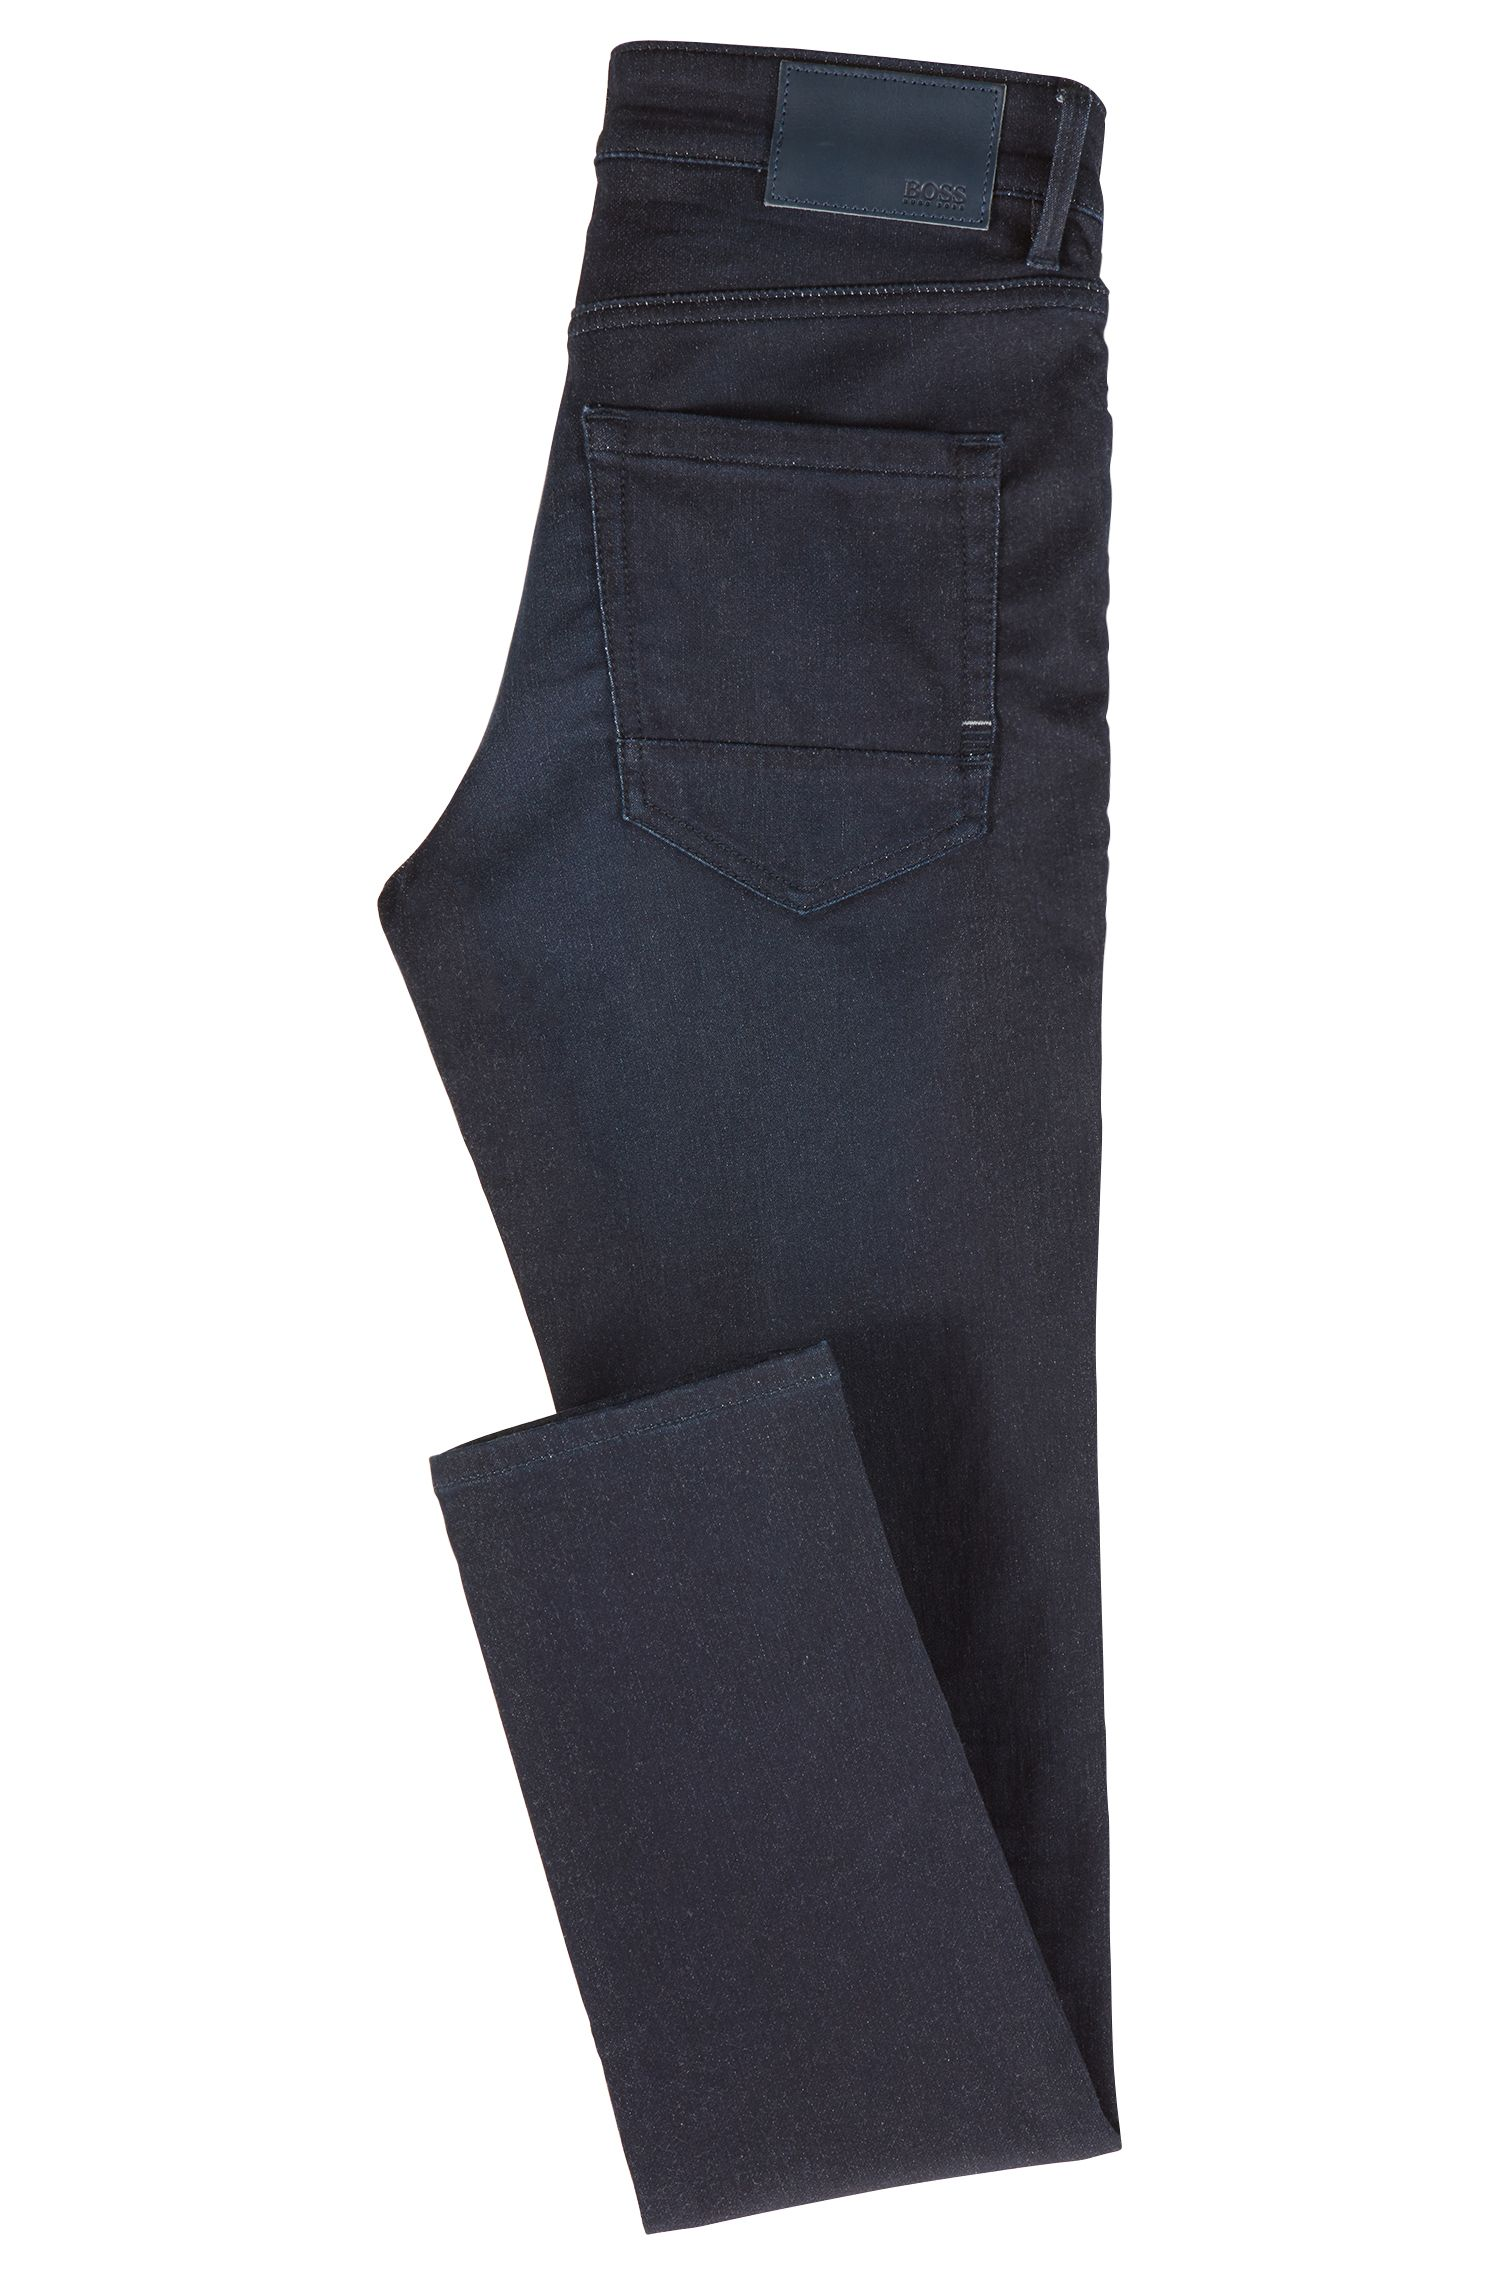 Skinny-fit jeans in a knitted stretch-cotton blend, Dark Blue